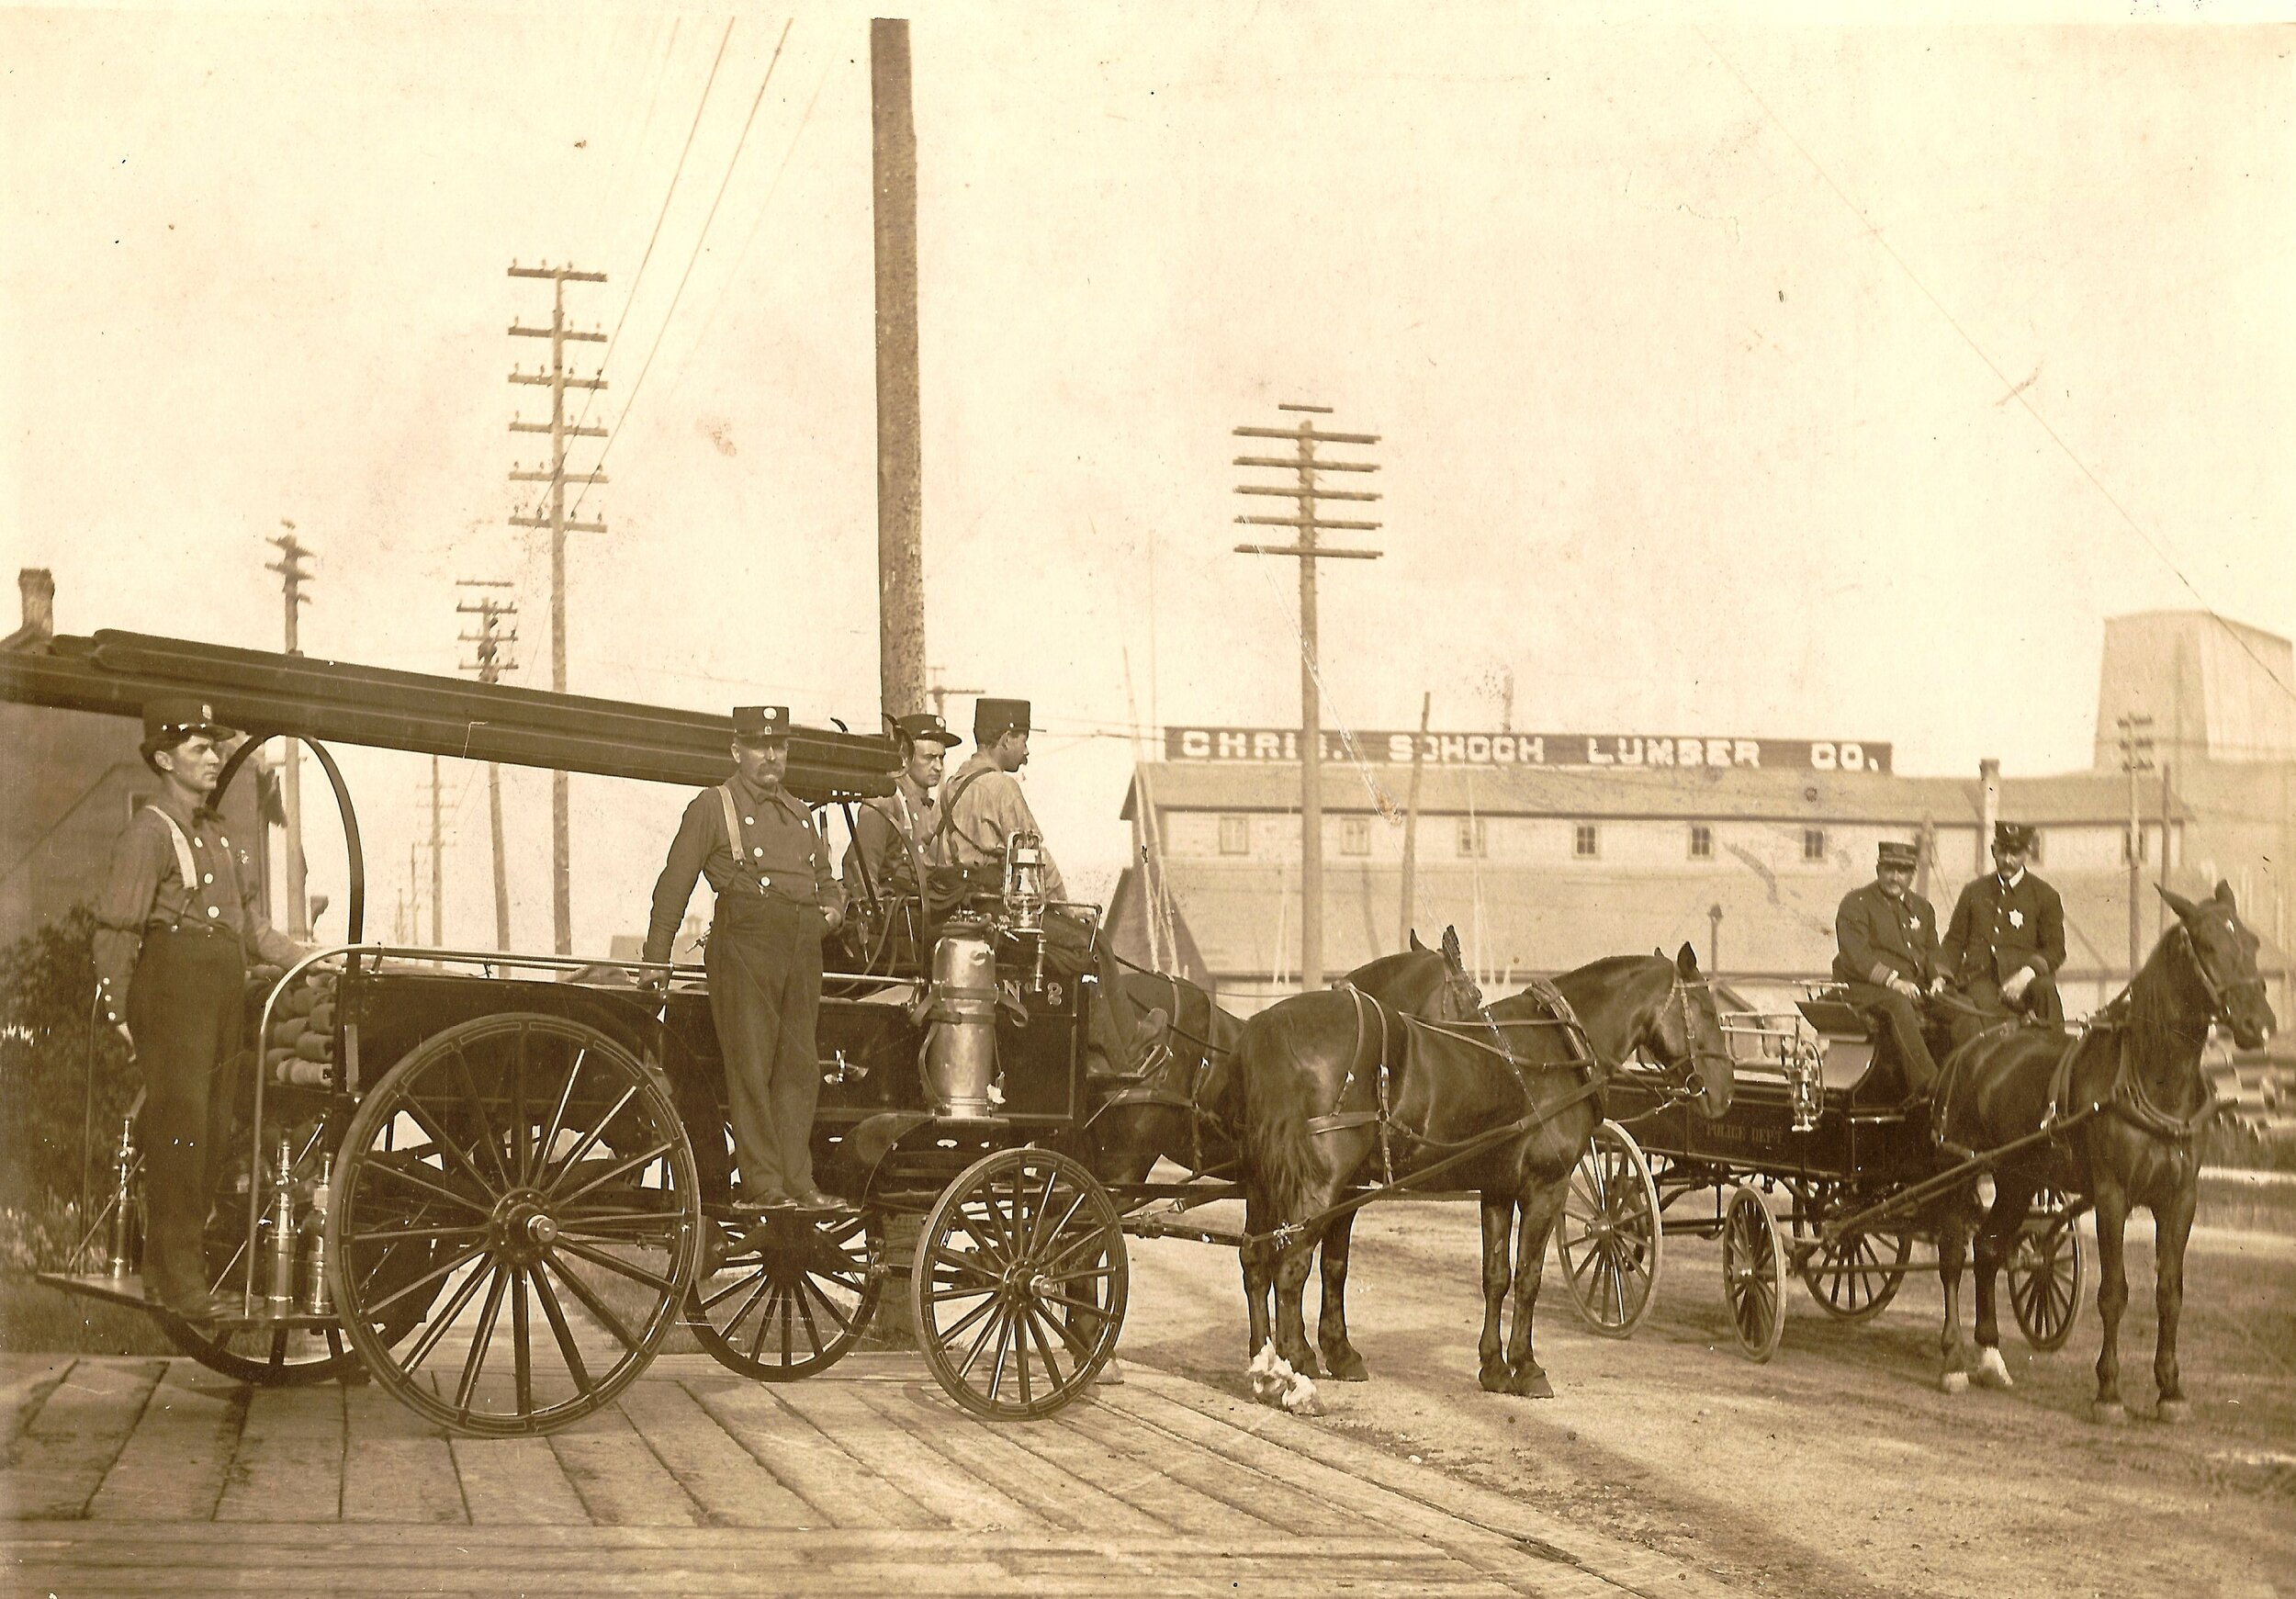 Horse drawn fire wagon with 4 firemen and single horse wagon with 2 men in front of south side firehouse at 911 Franklin St., Manitowoc. View to northwest is the Chris Schoch Lumber Co., seen in the back. Early 1900s.